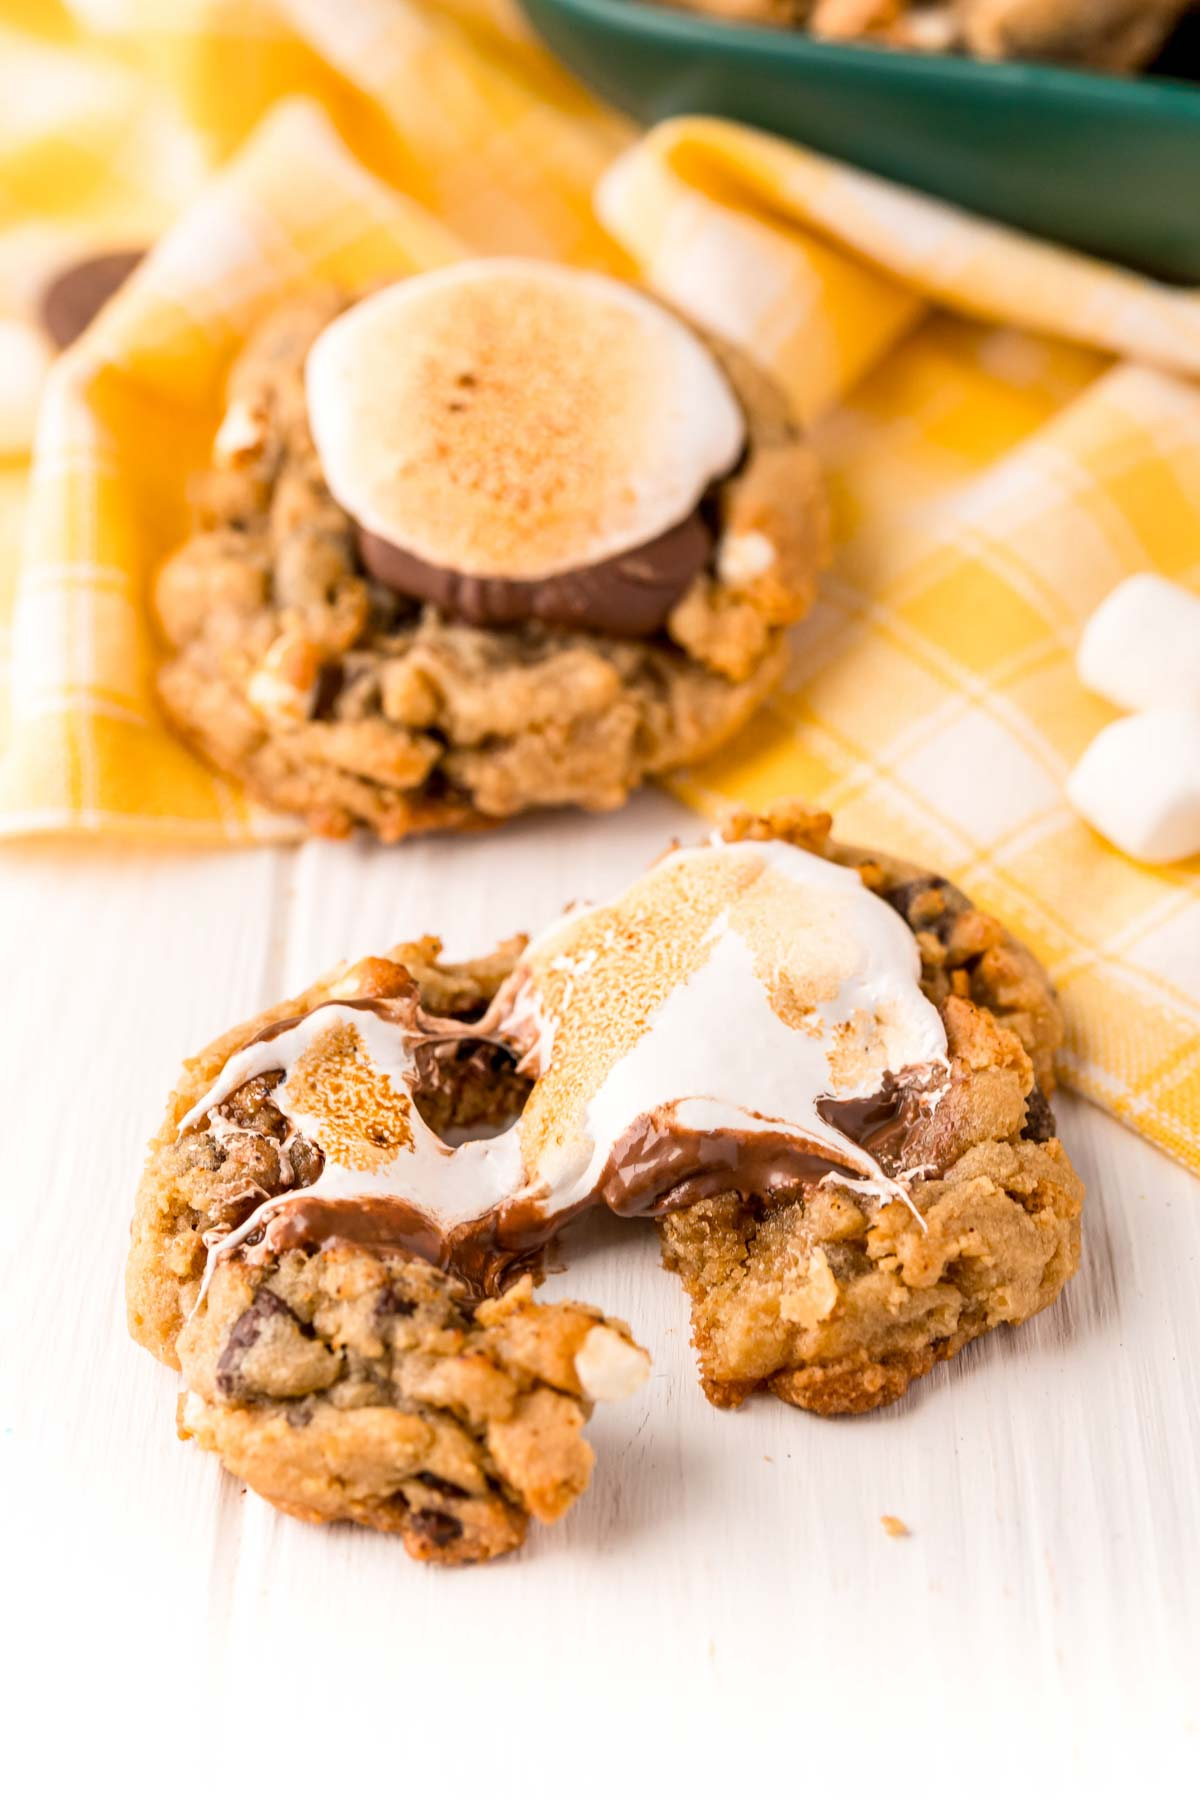 s'mores cookie sitting on a white table